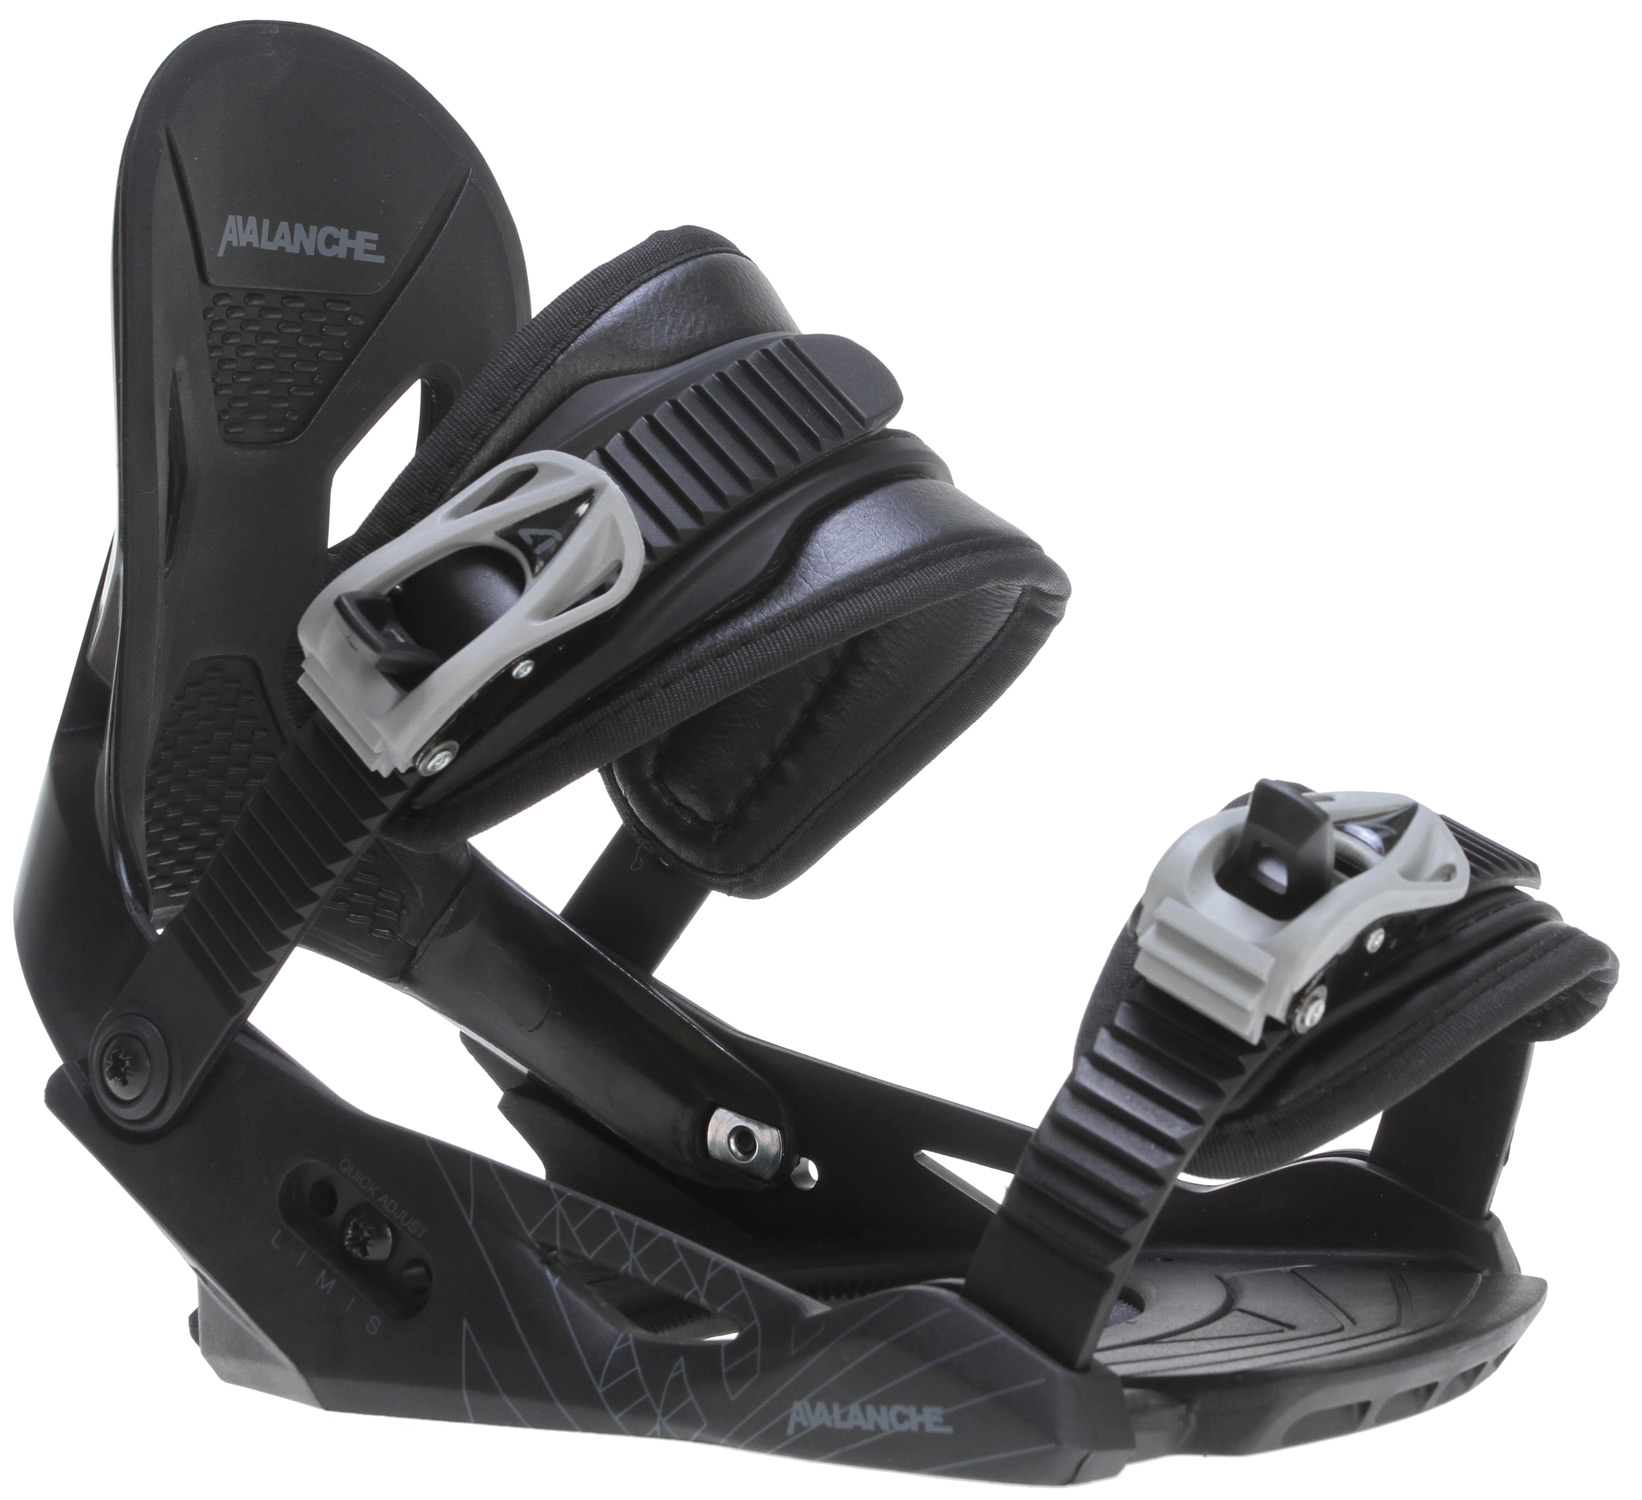 Avalanche Summit Snowboard Bindings Black Mens by Avalanche